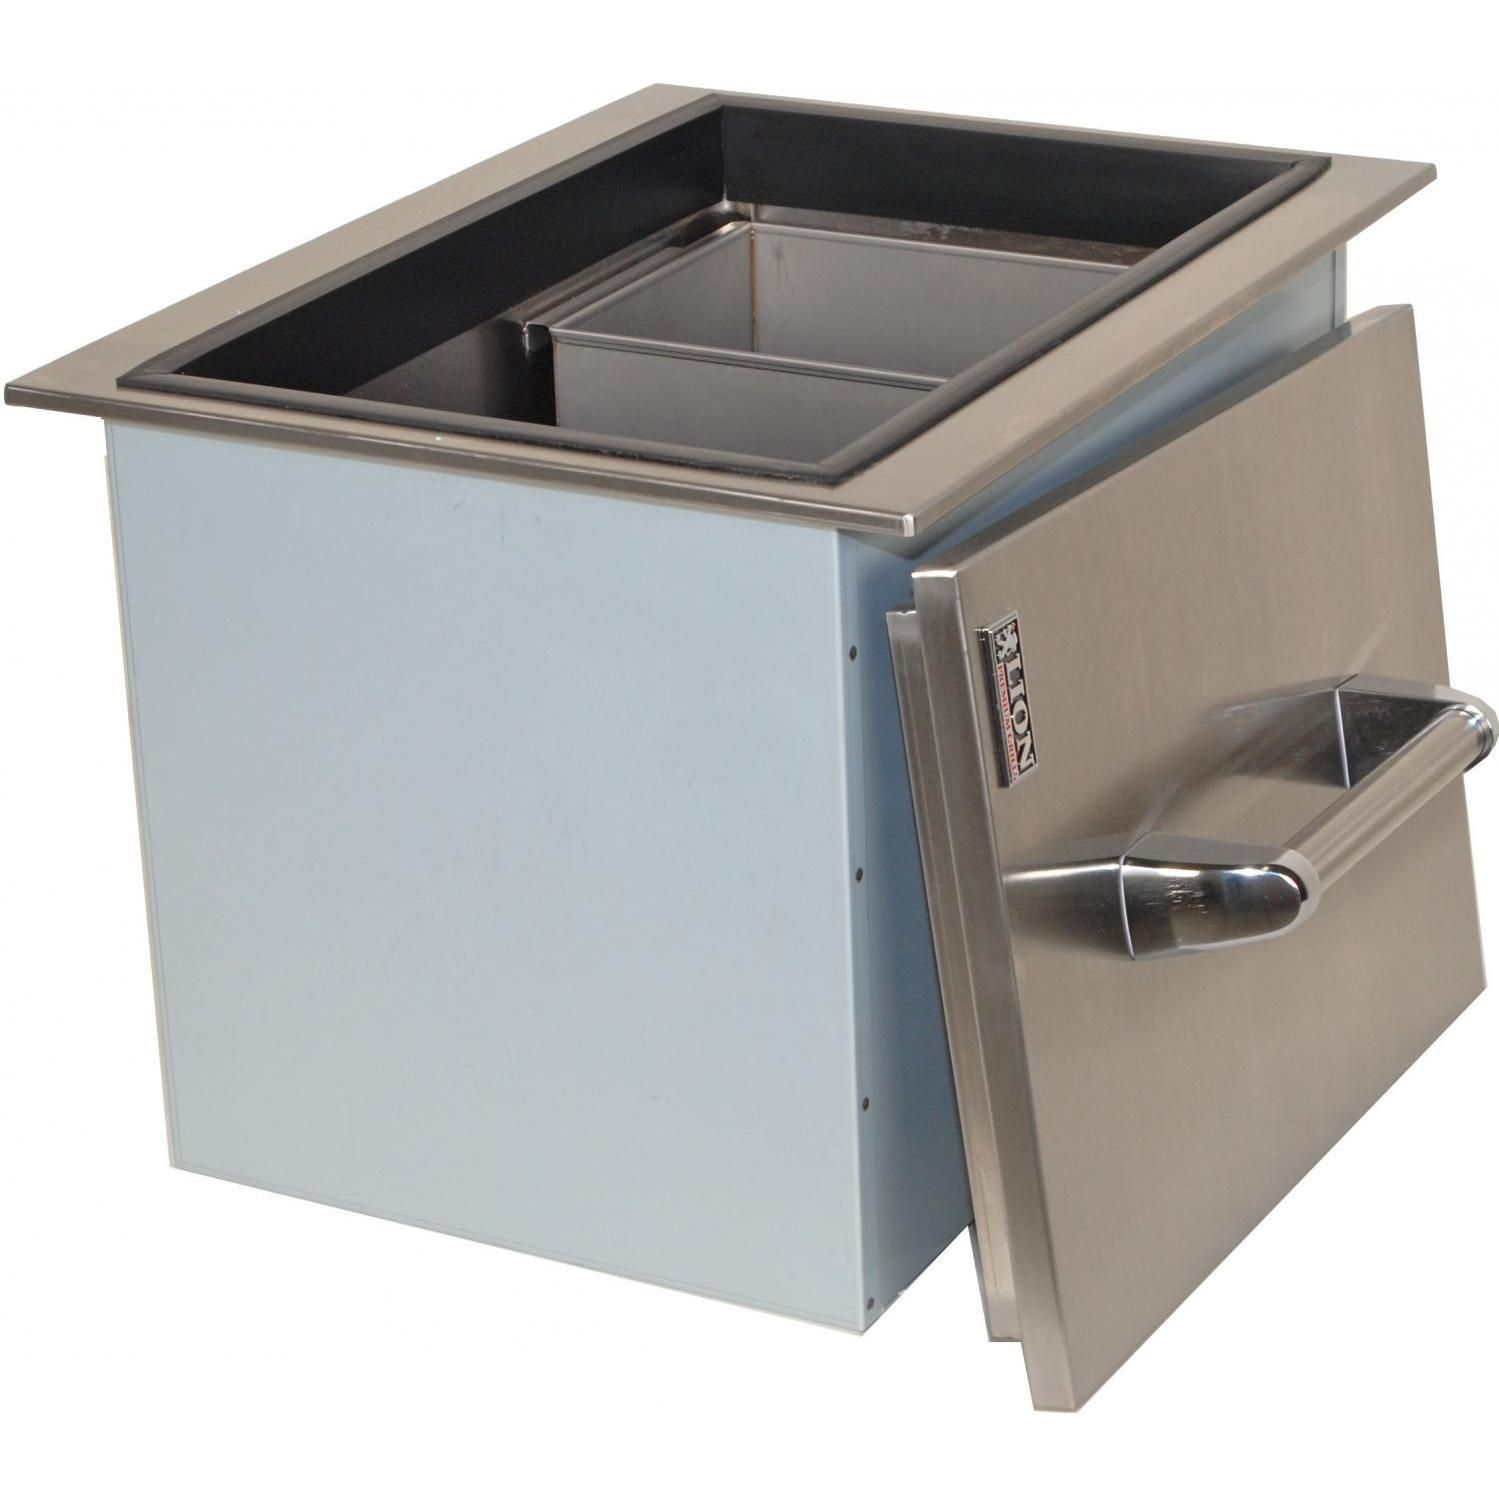 Lion Drop In Ice Bin With Condiment Tray Stainless Steel